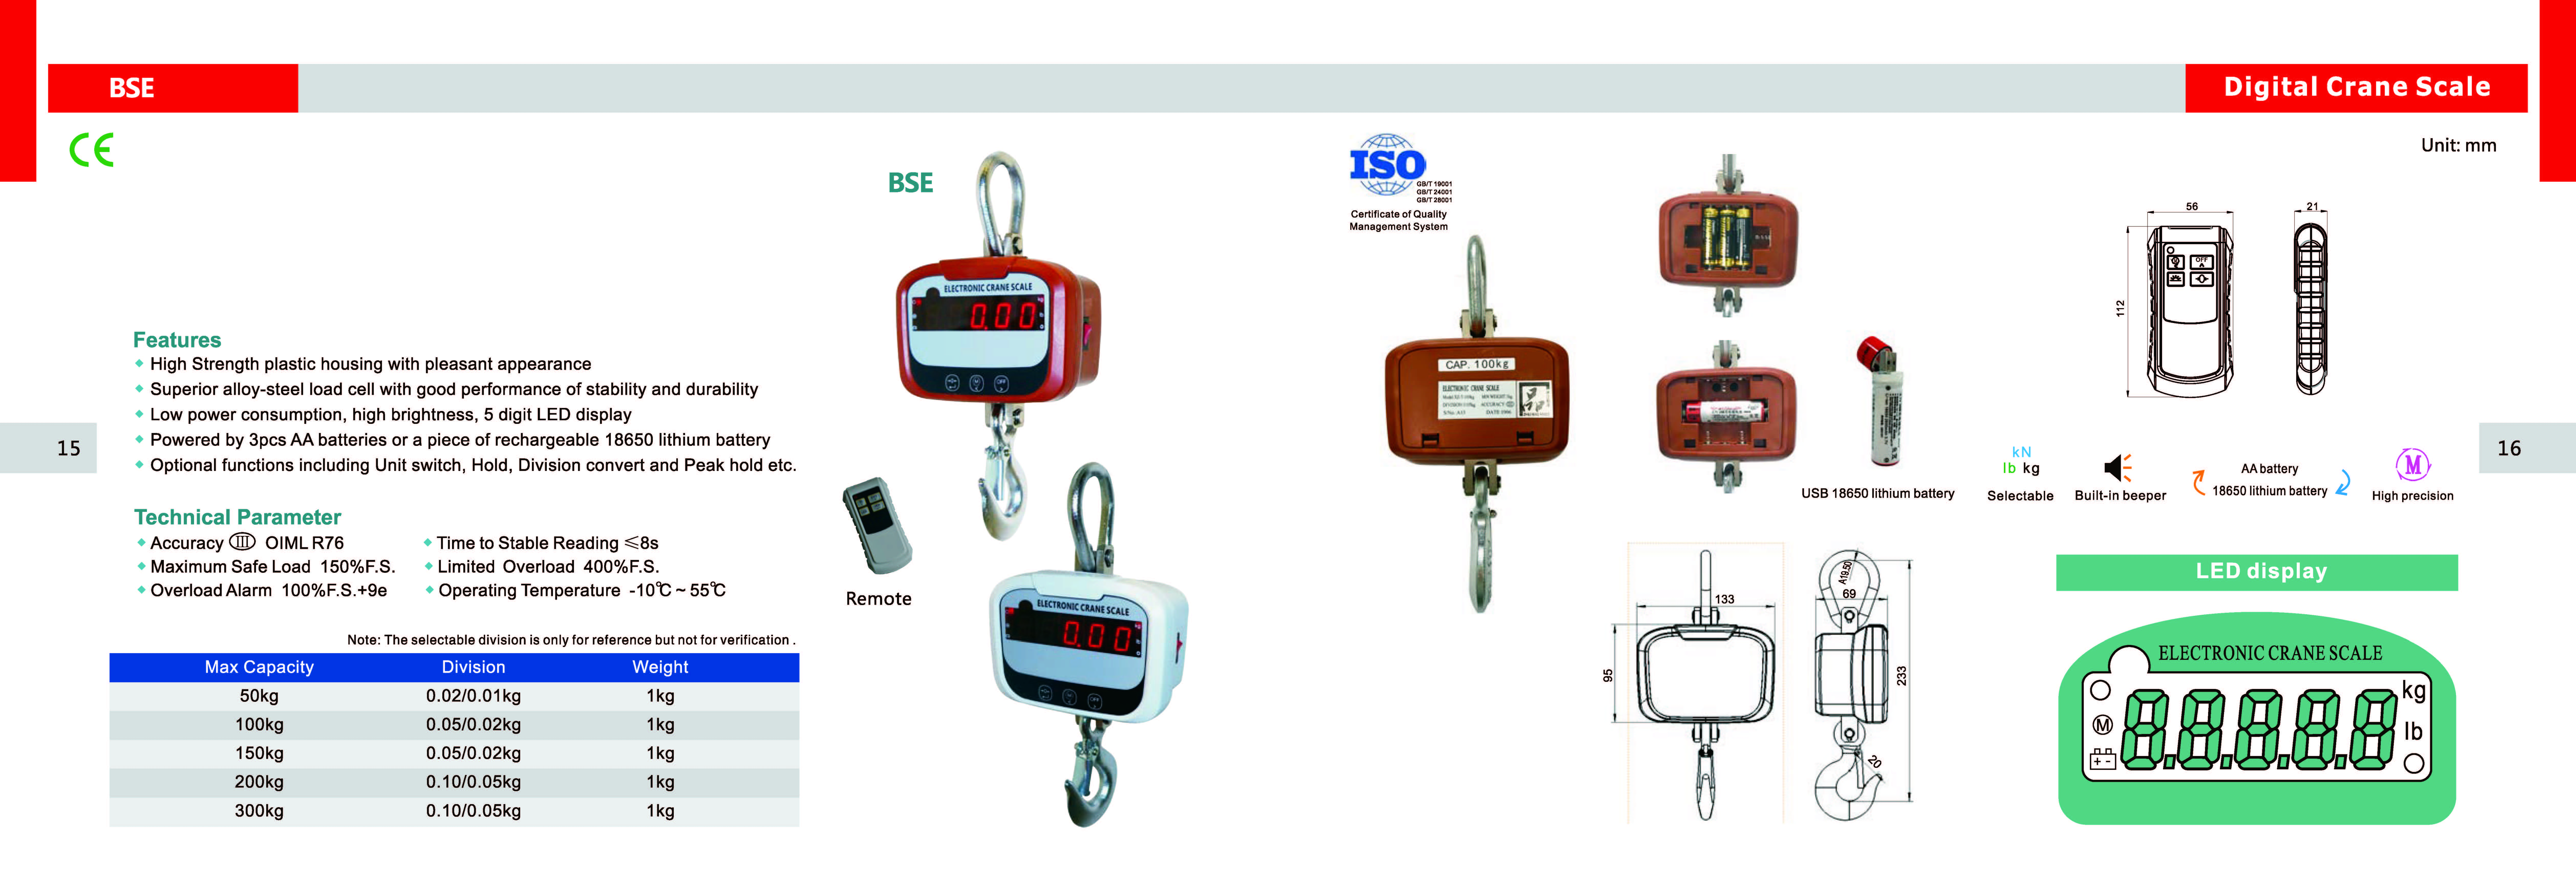 BSE weighing scale